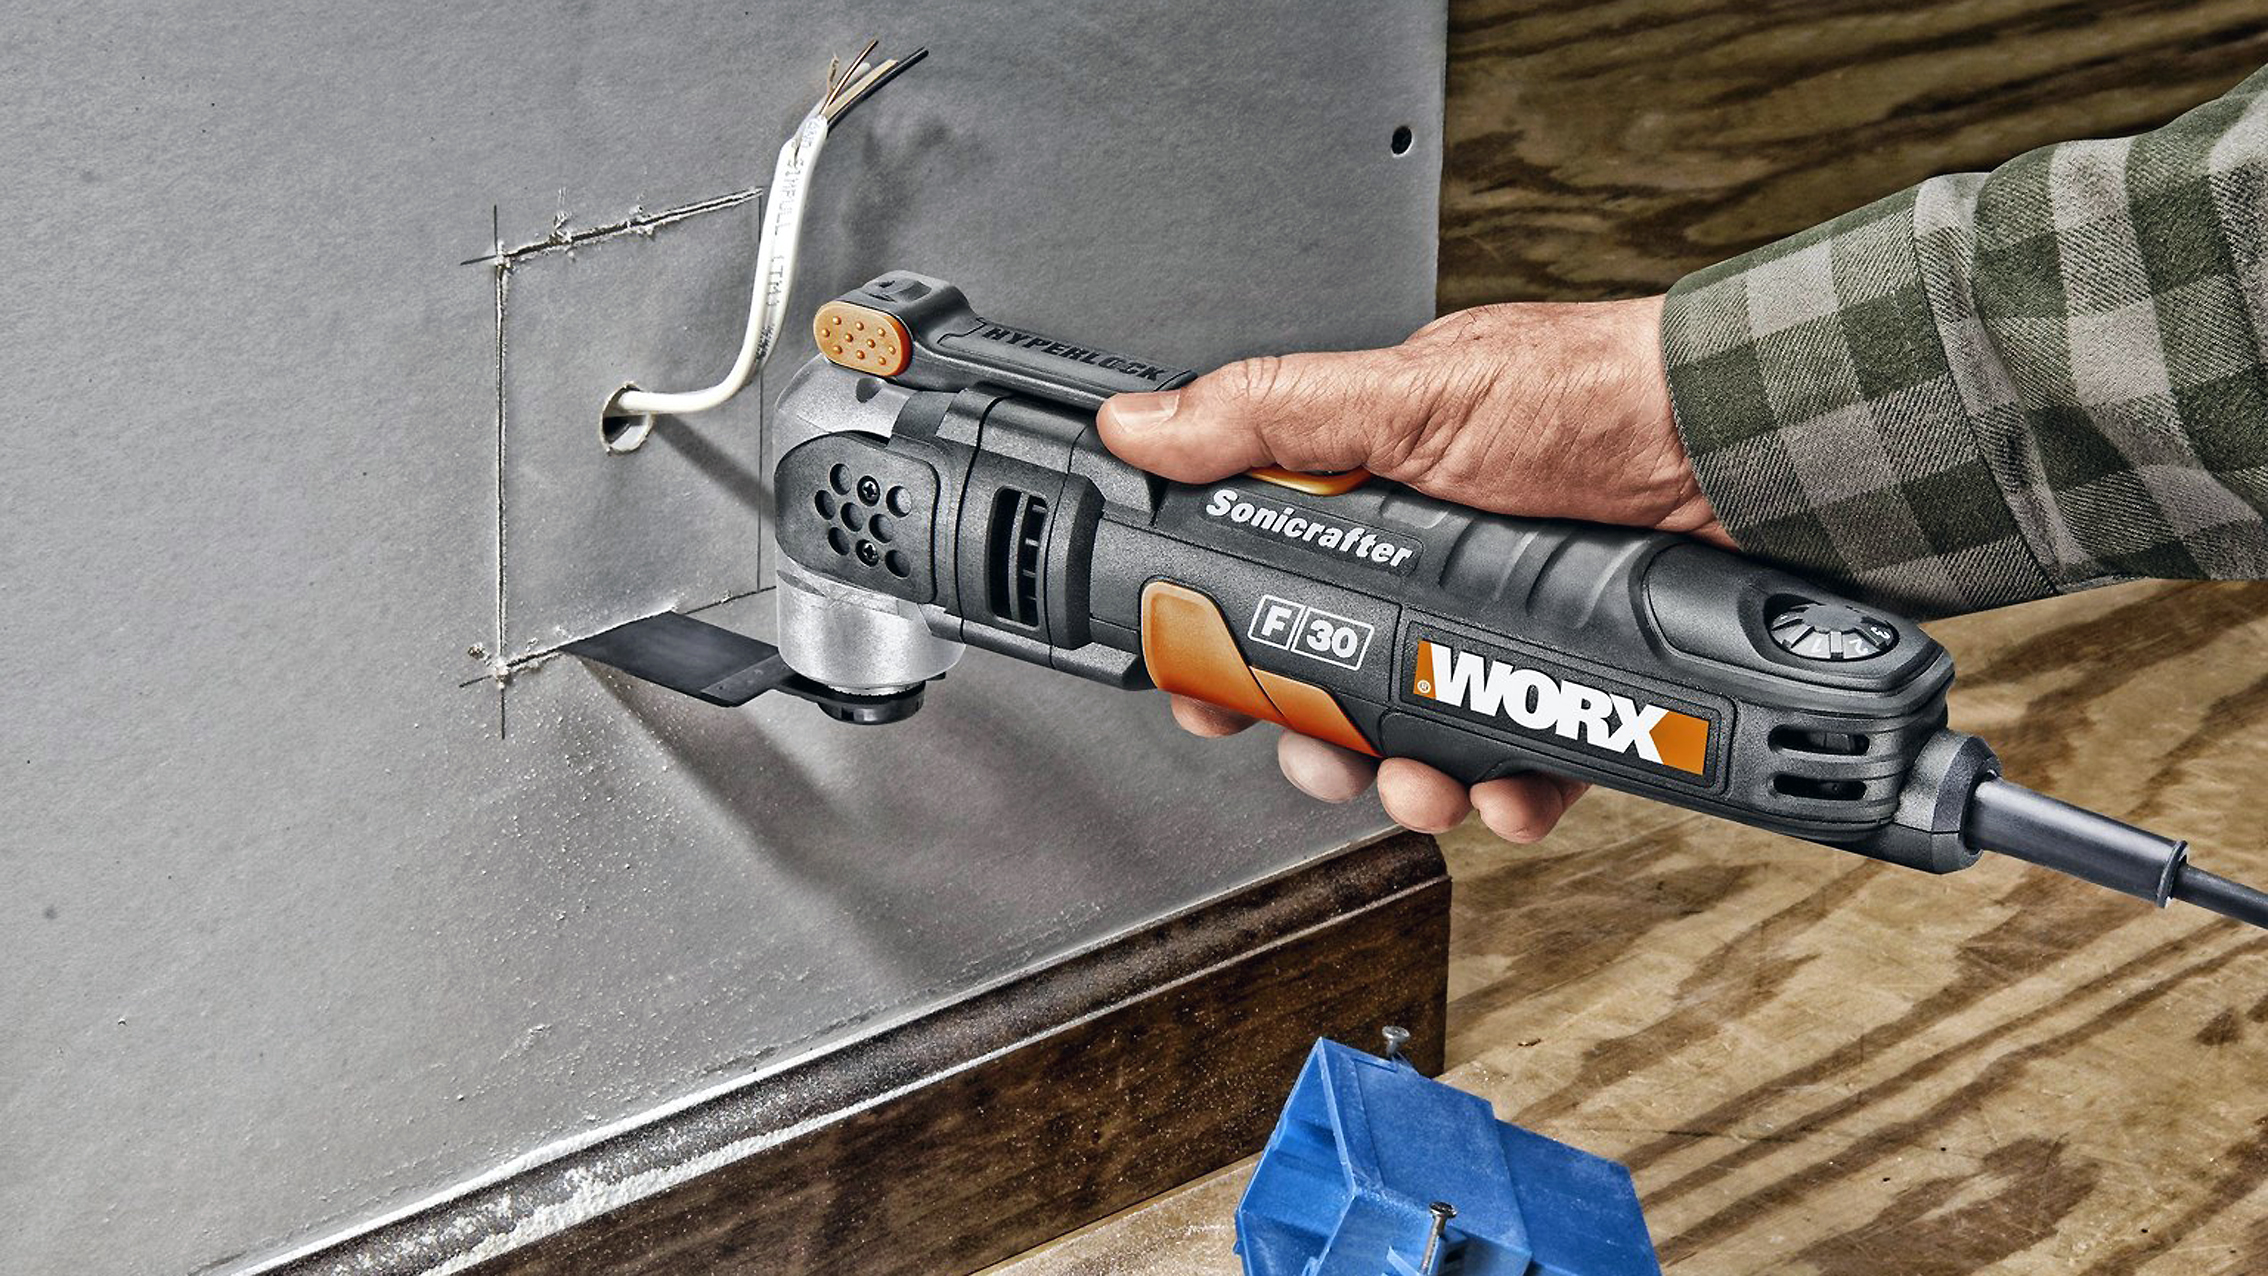 Beste Multitool Machine Best Multi Tool 2019 Cut Sand Grind And More With The Best